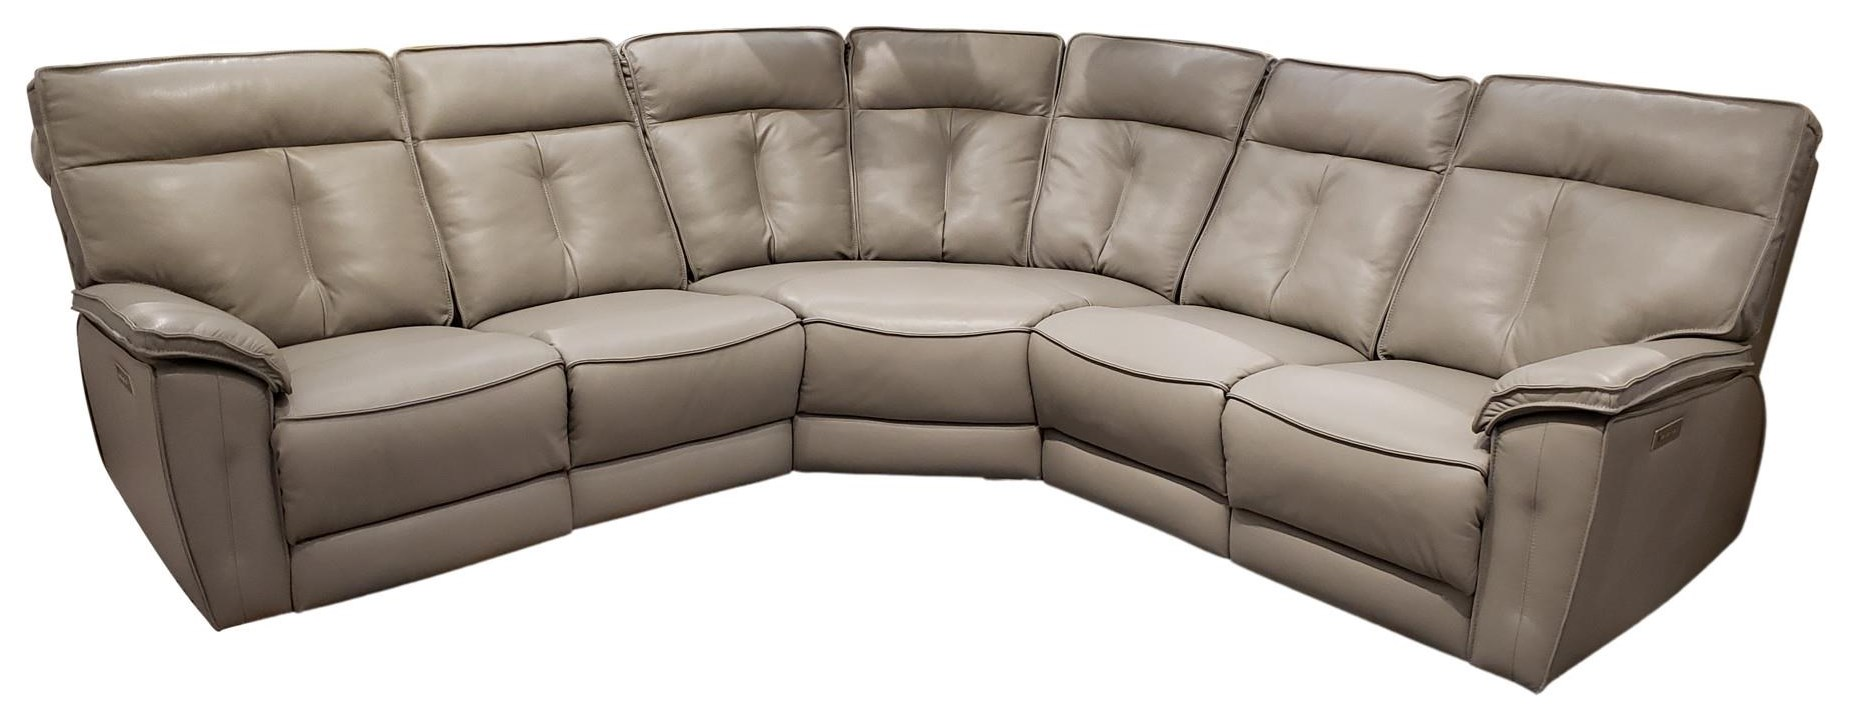 41187 41187 5pc. Sectional by Palliser at Upper Room Home Furnishings